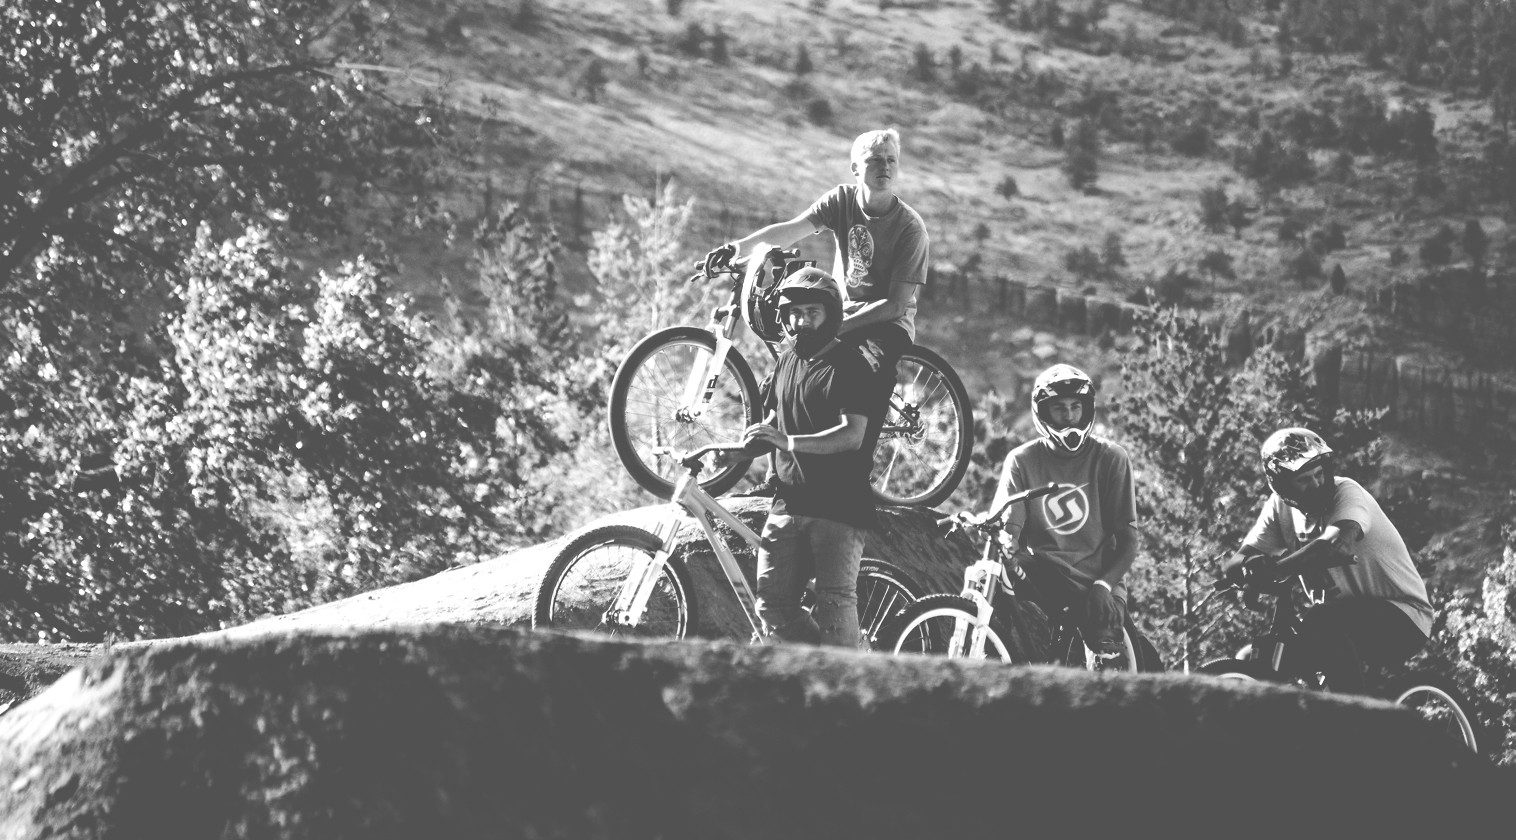 Outlaws of Dirt - rhiannon - Mountain Biking Pictures - Vital MTB